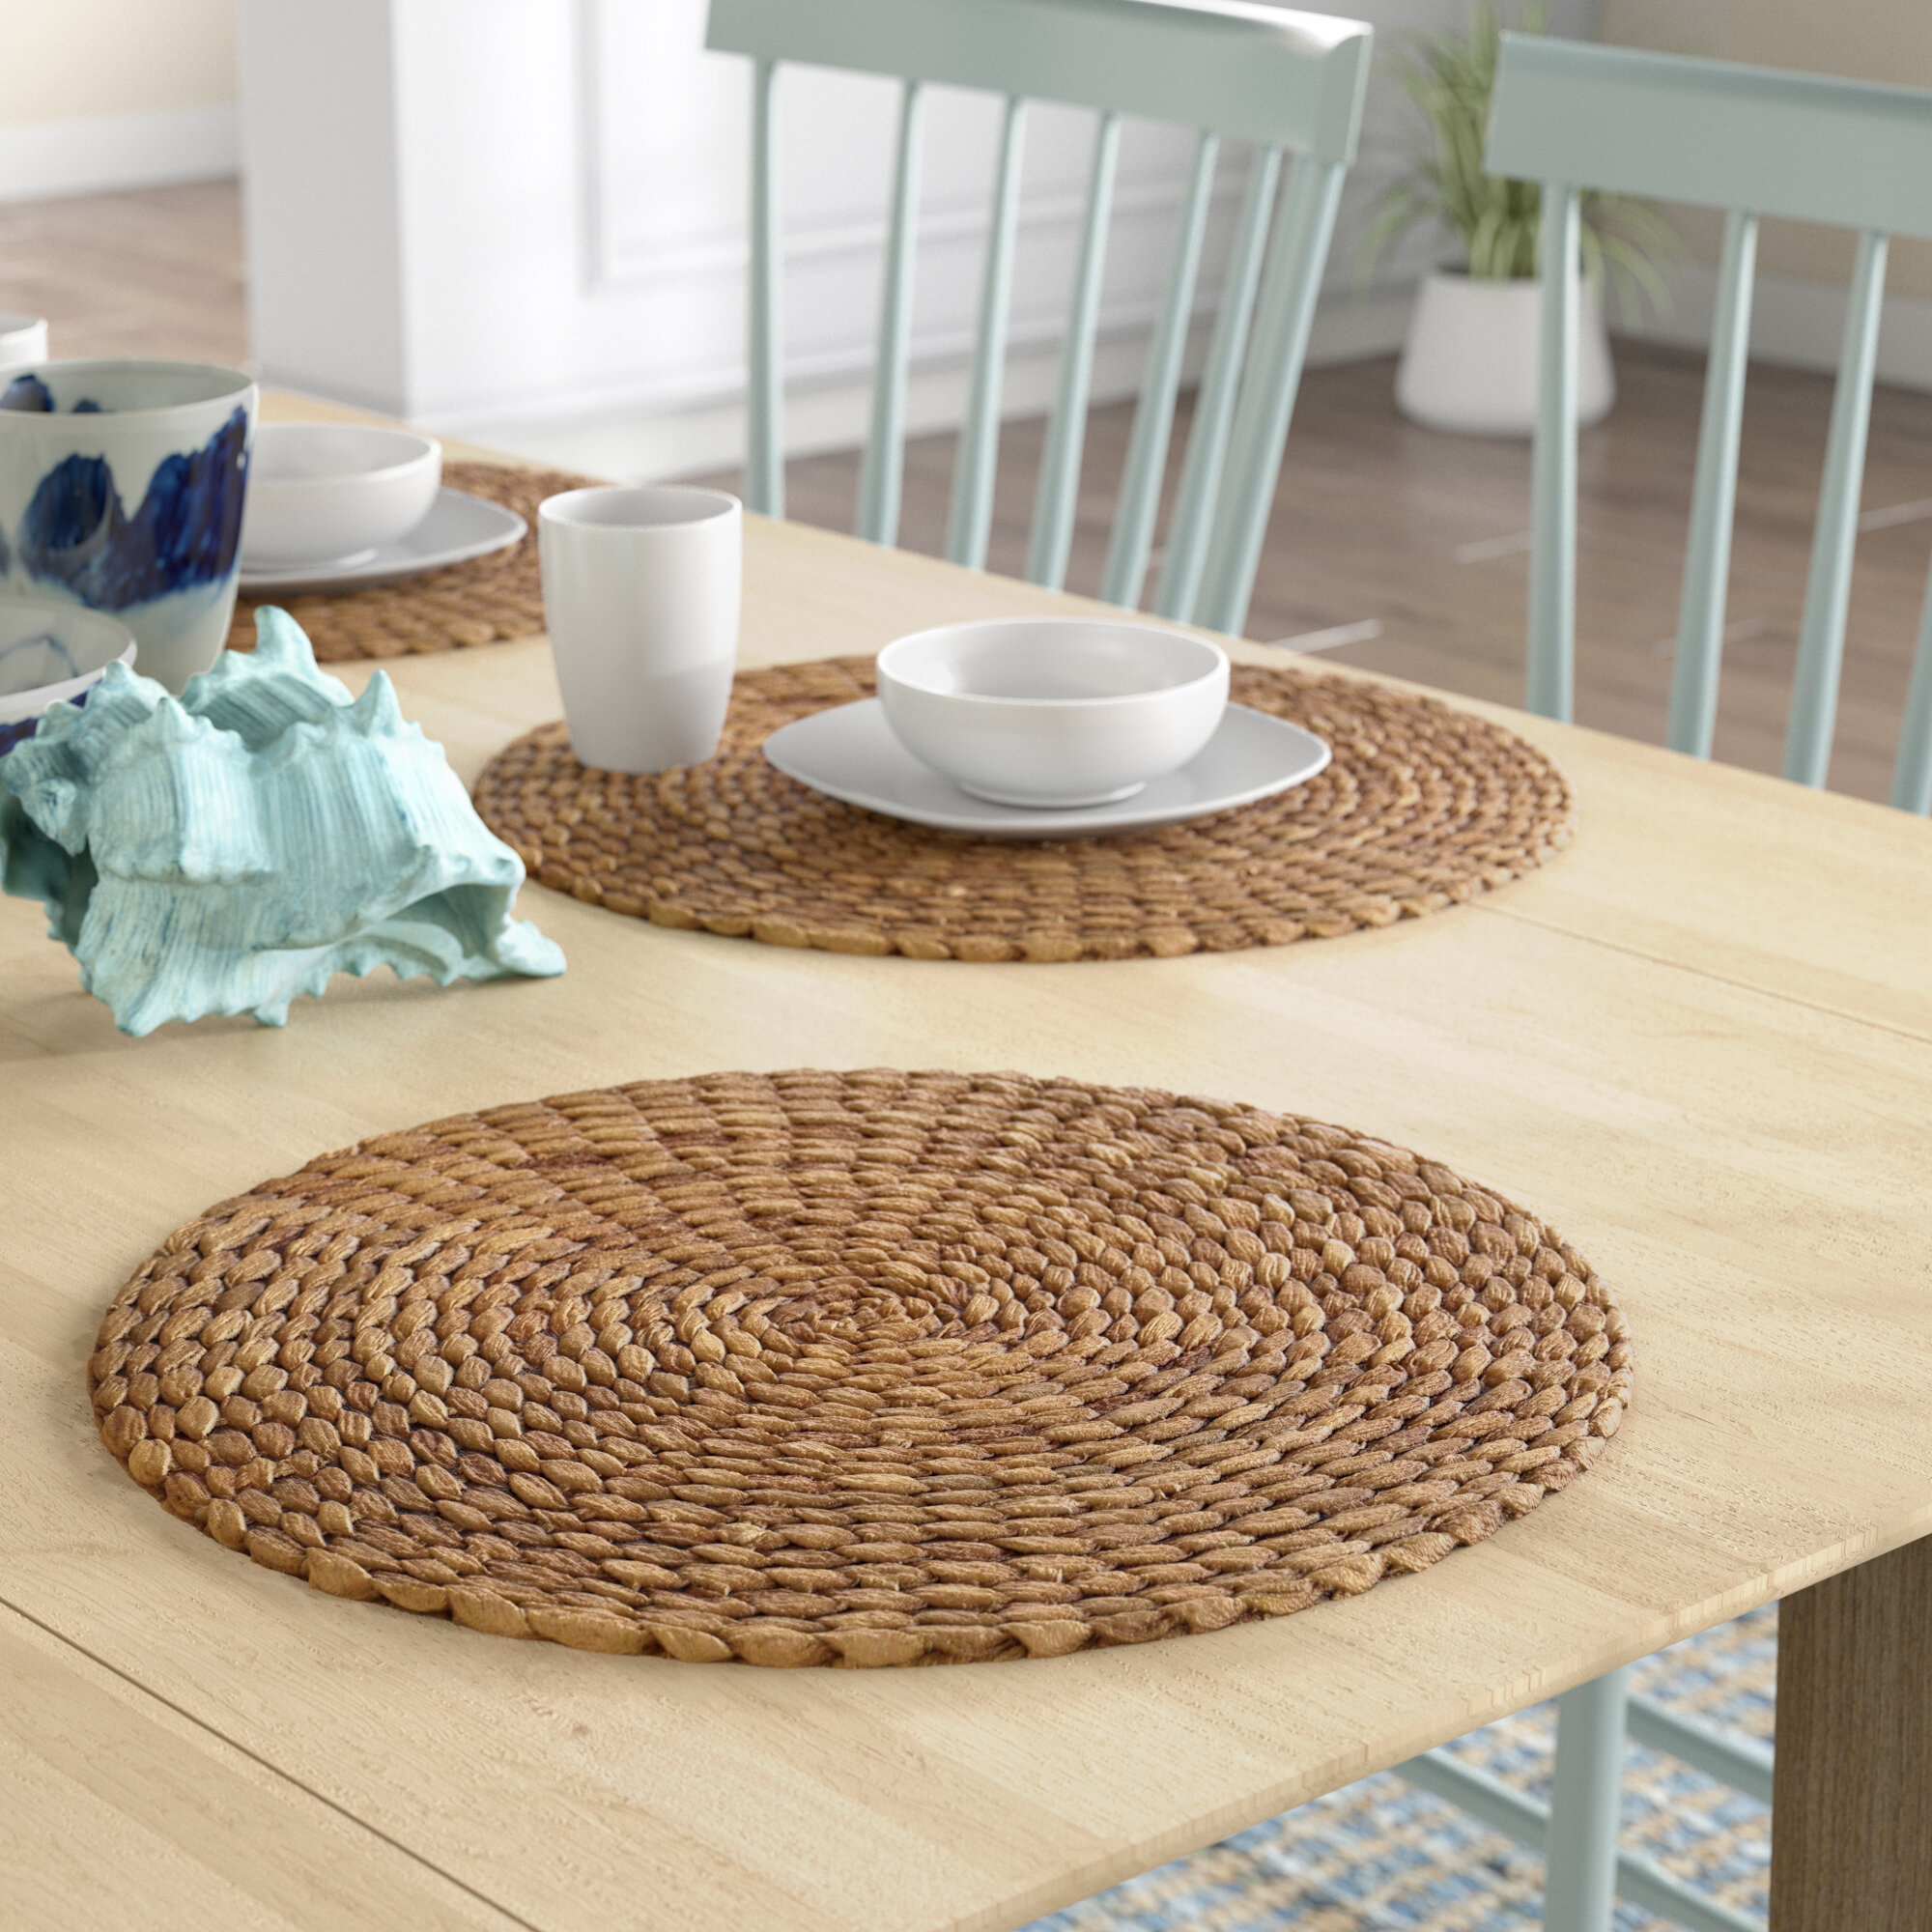 Placemats for Round Table You'll Love in 9   VisualHunt